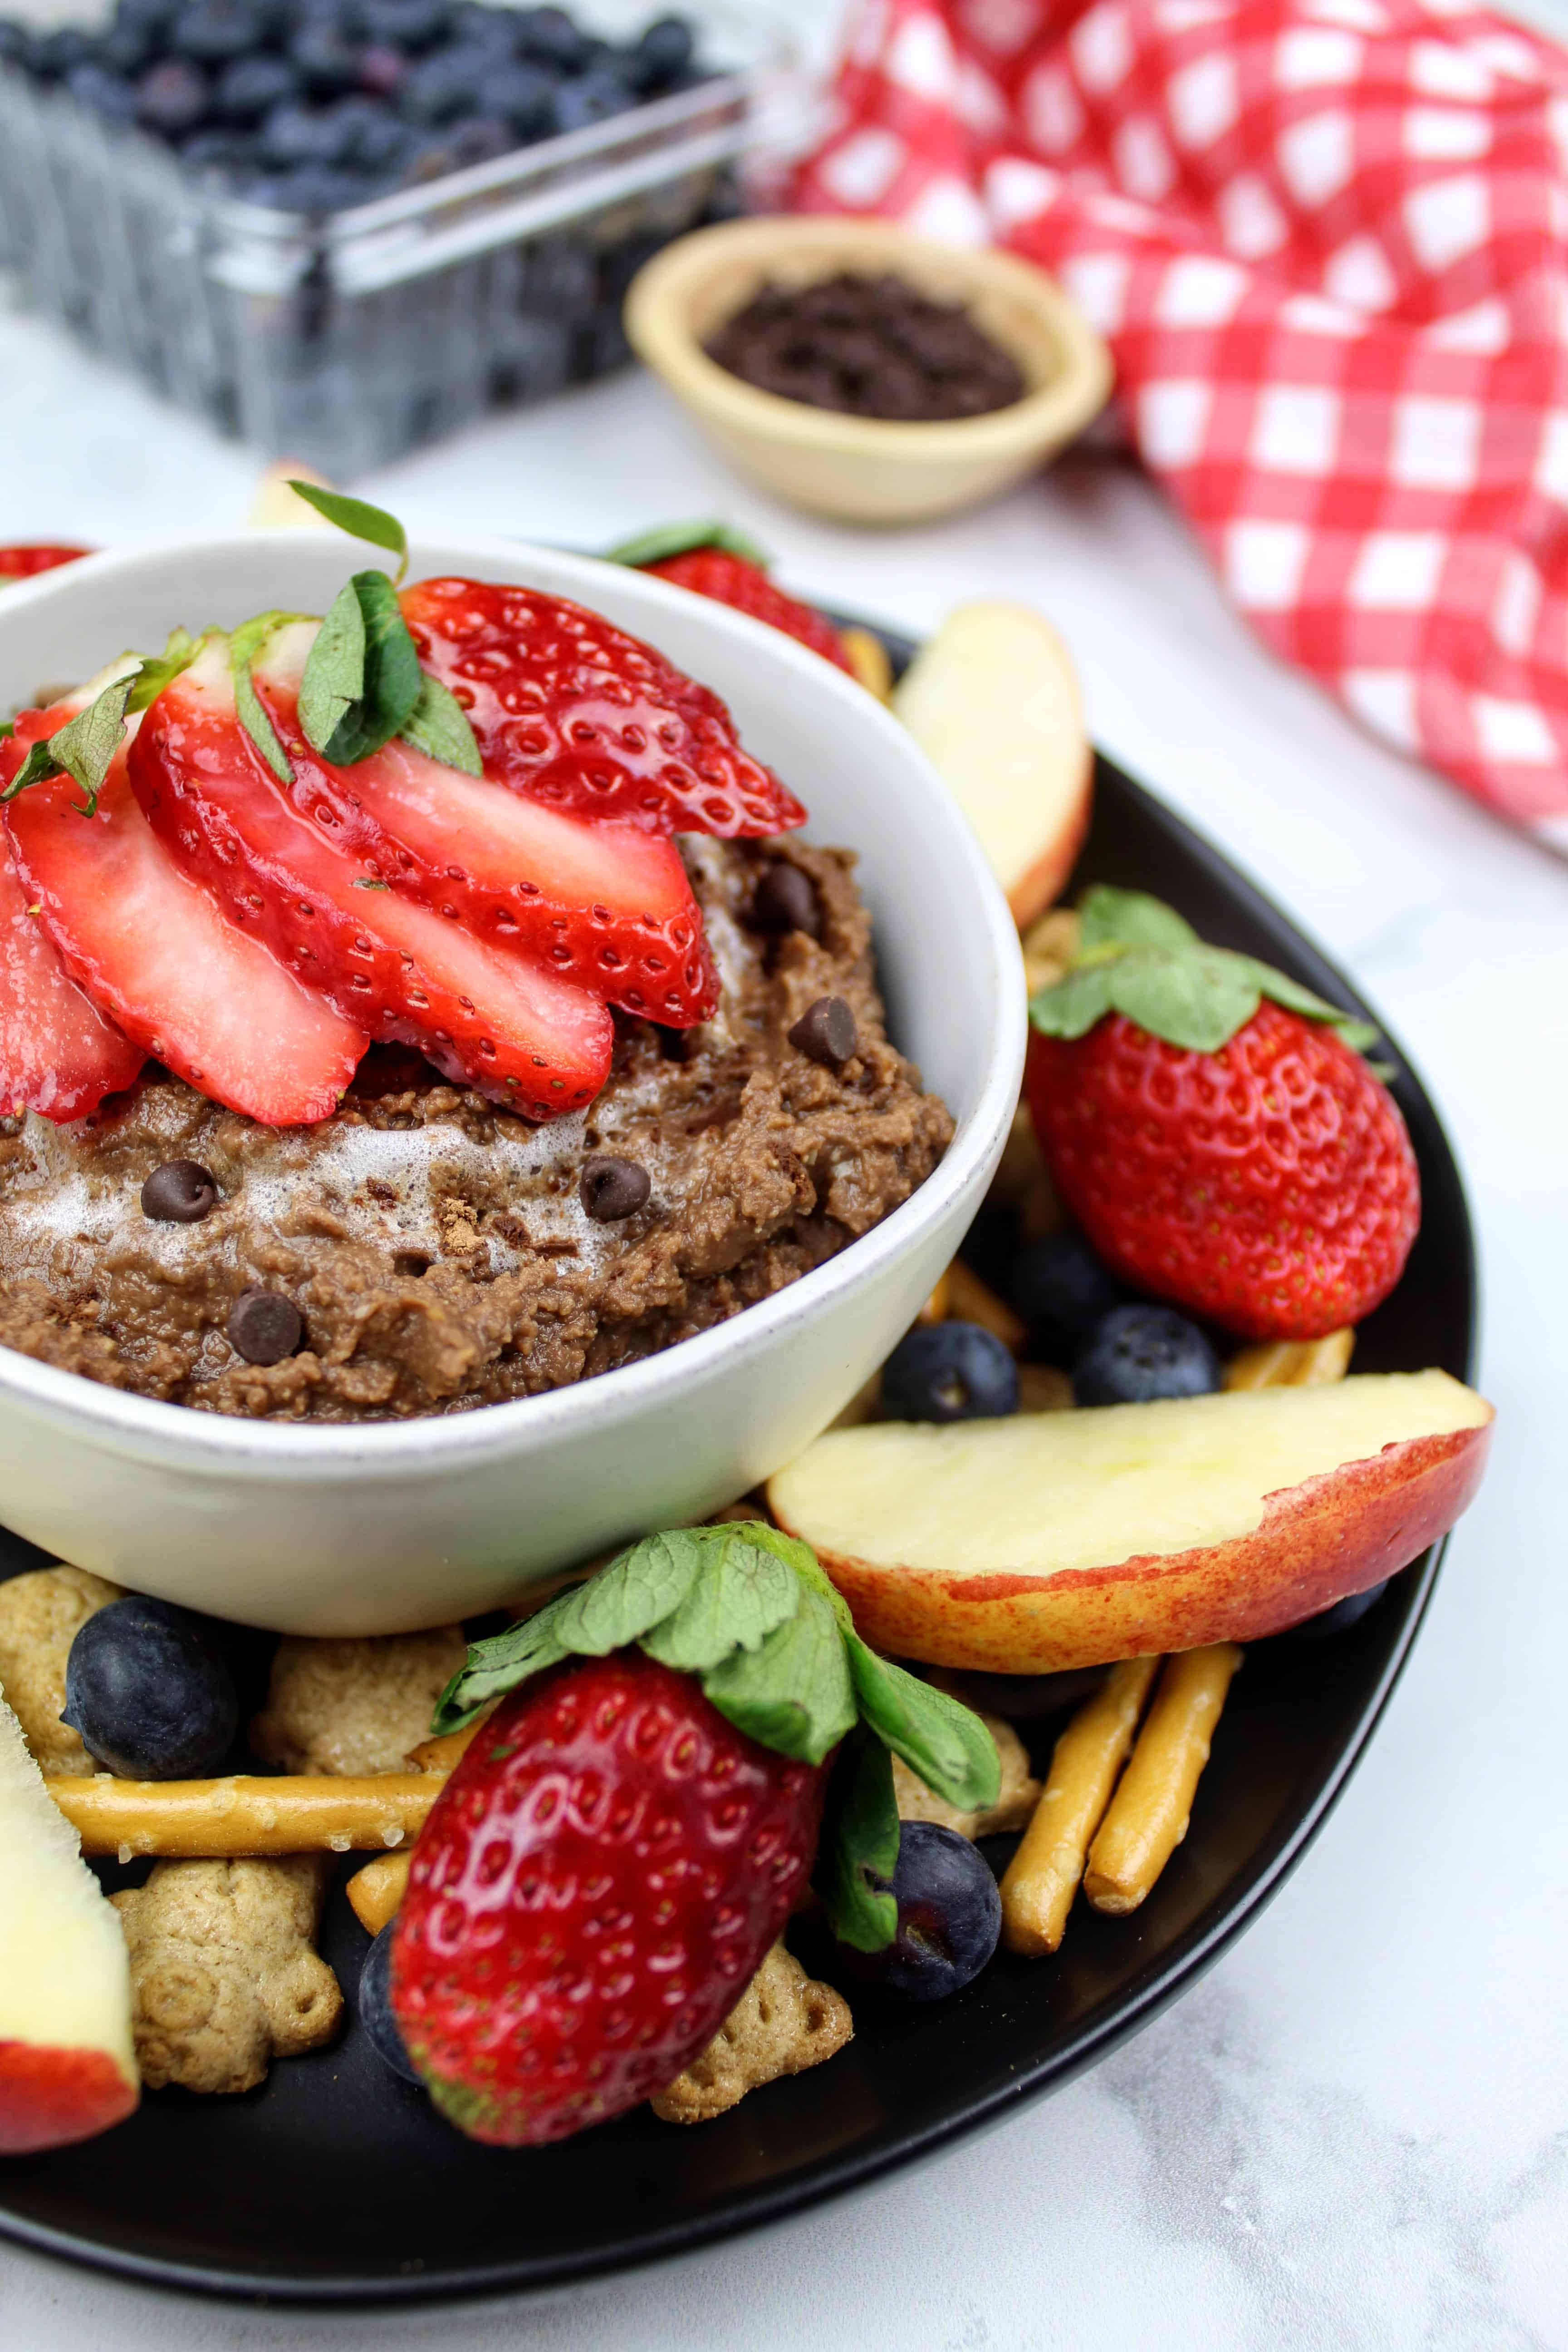 Brownie Batter Hummus {Vegan, GF, Top 8 Free}